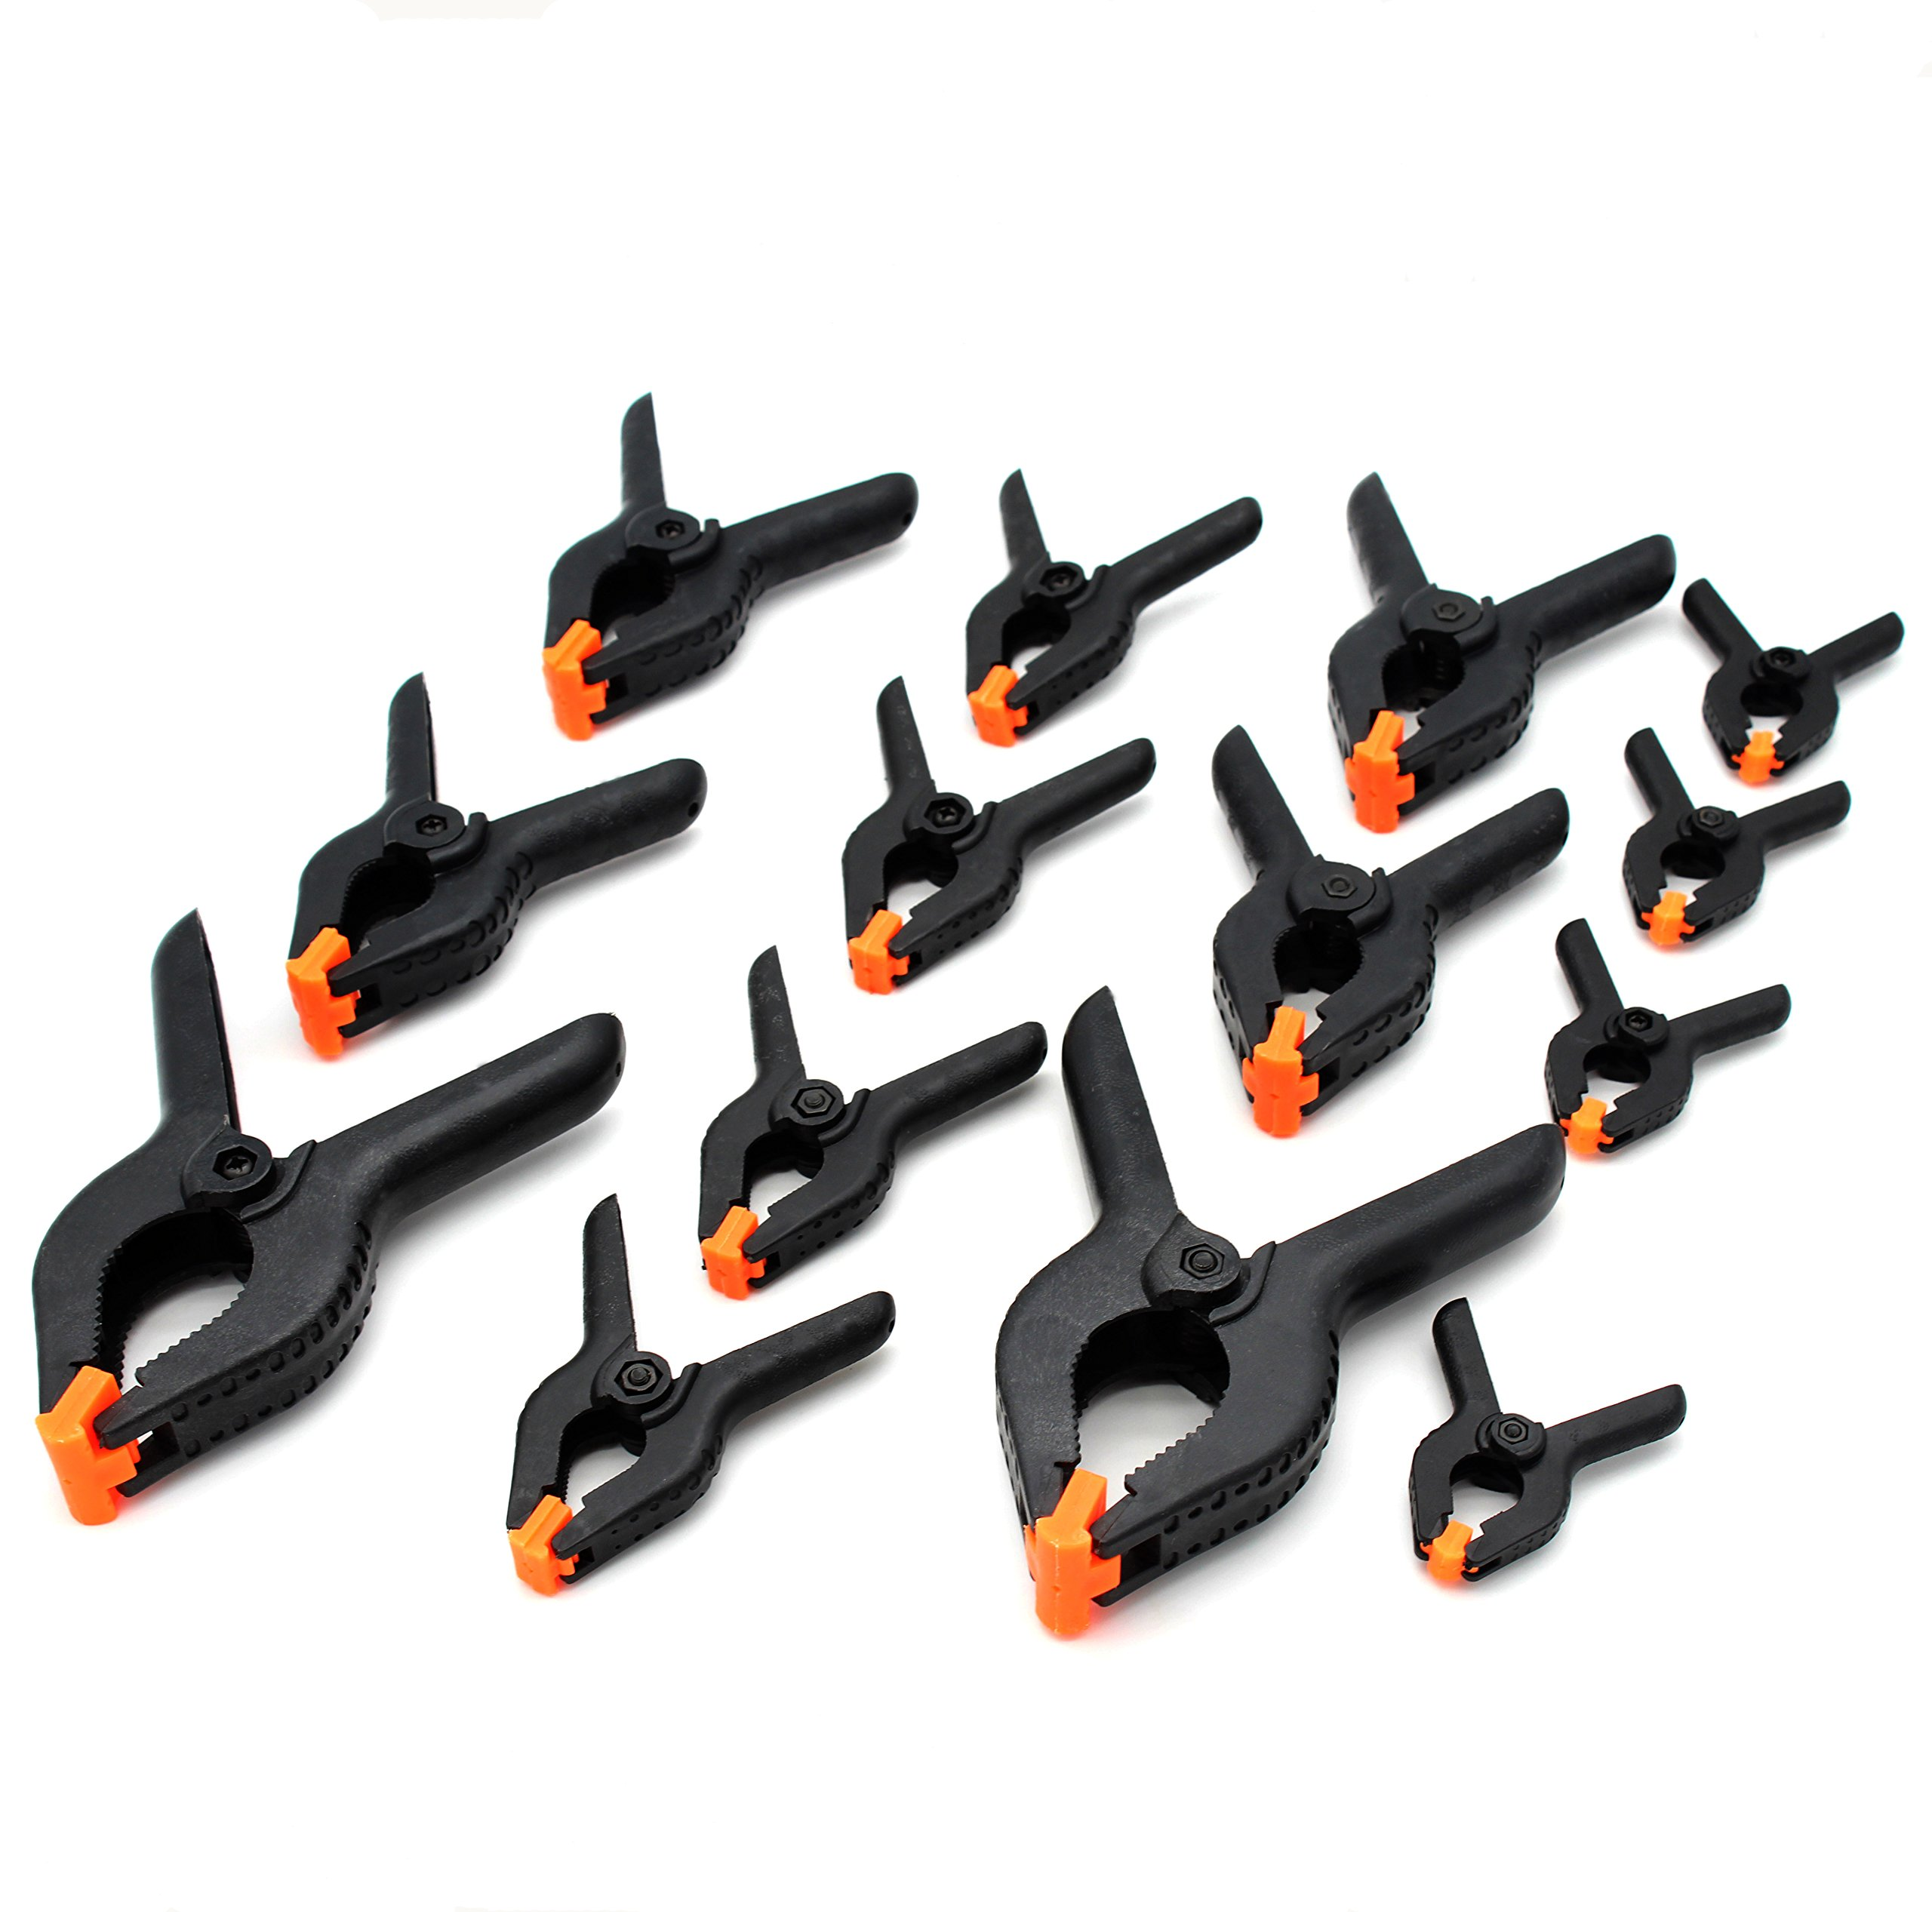 Tueascallk Nylon Spring Clamps, Woodworking Clamp, 2-1/2'', 3-3/4'', 4-1/2'', 6-1/5'' Four Specification Kits, for Home Improvement and Photography Projects, Set of 14